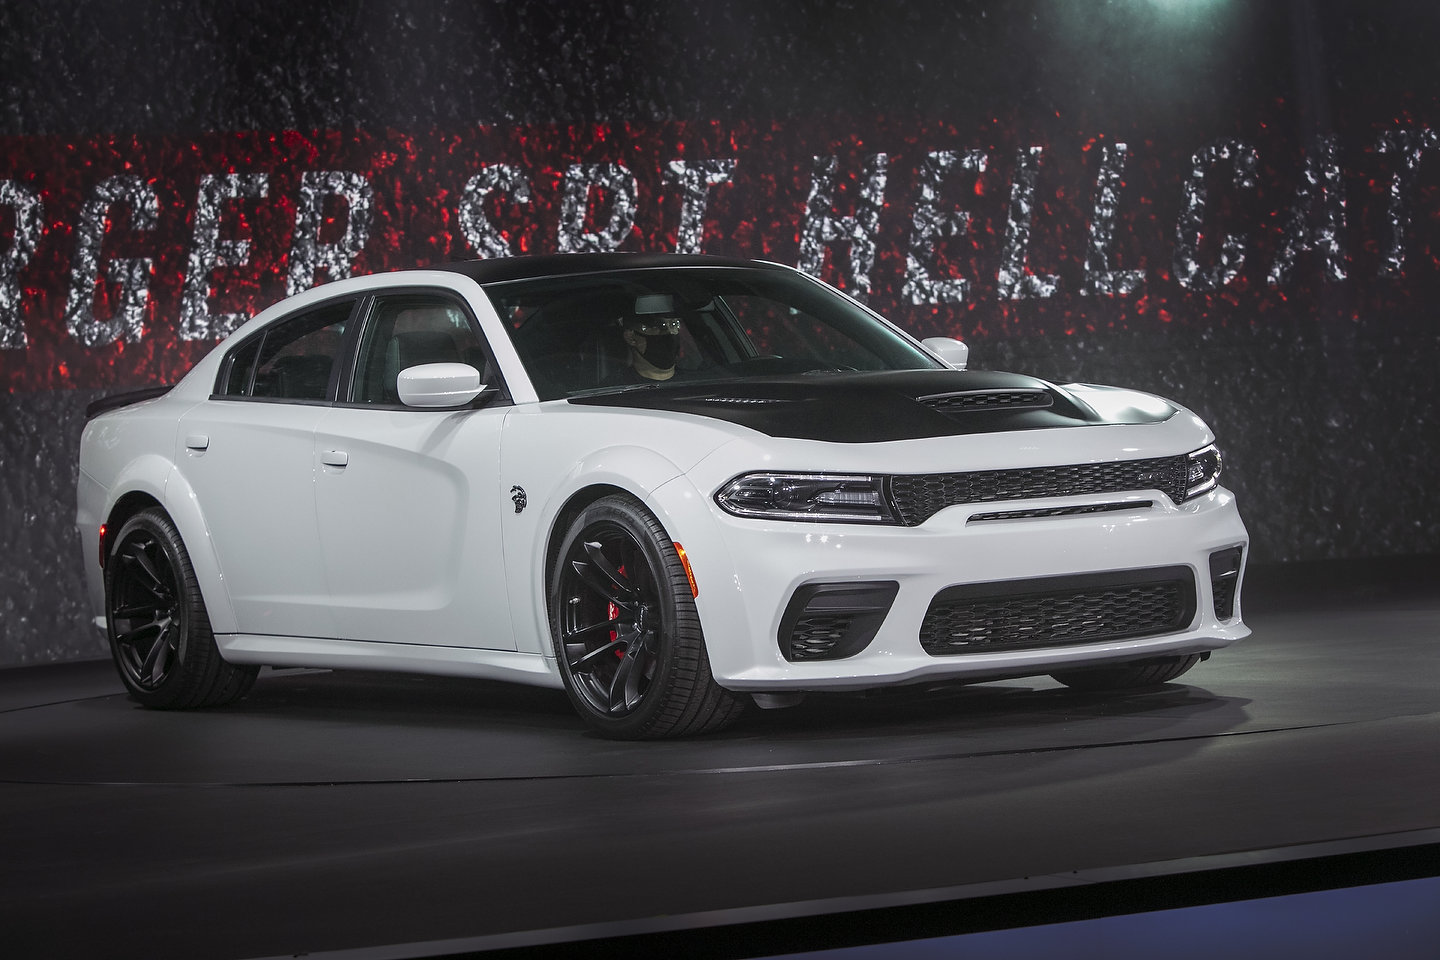 2021 dodge charger srt hellcat redeye when the bullet